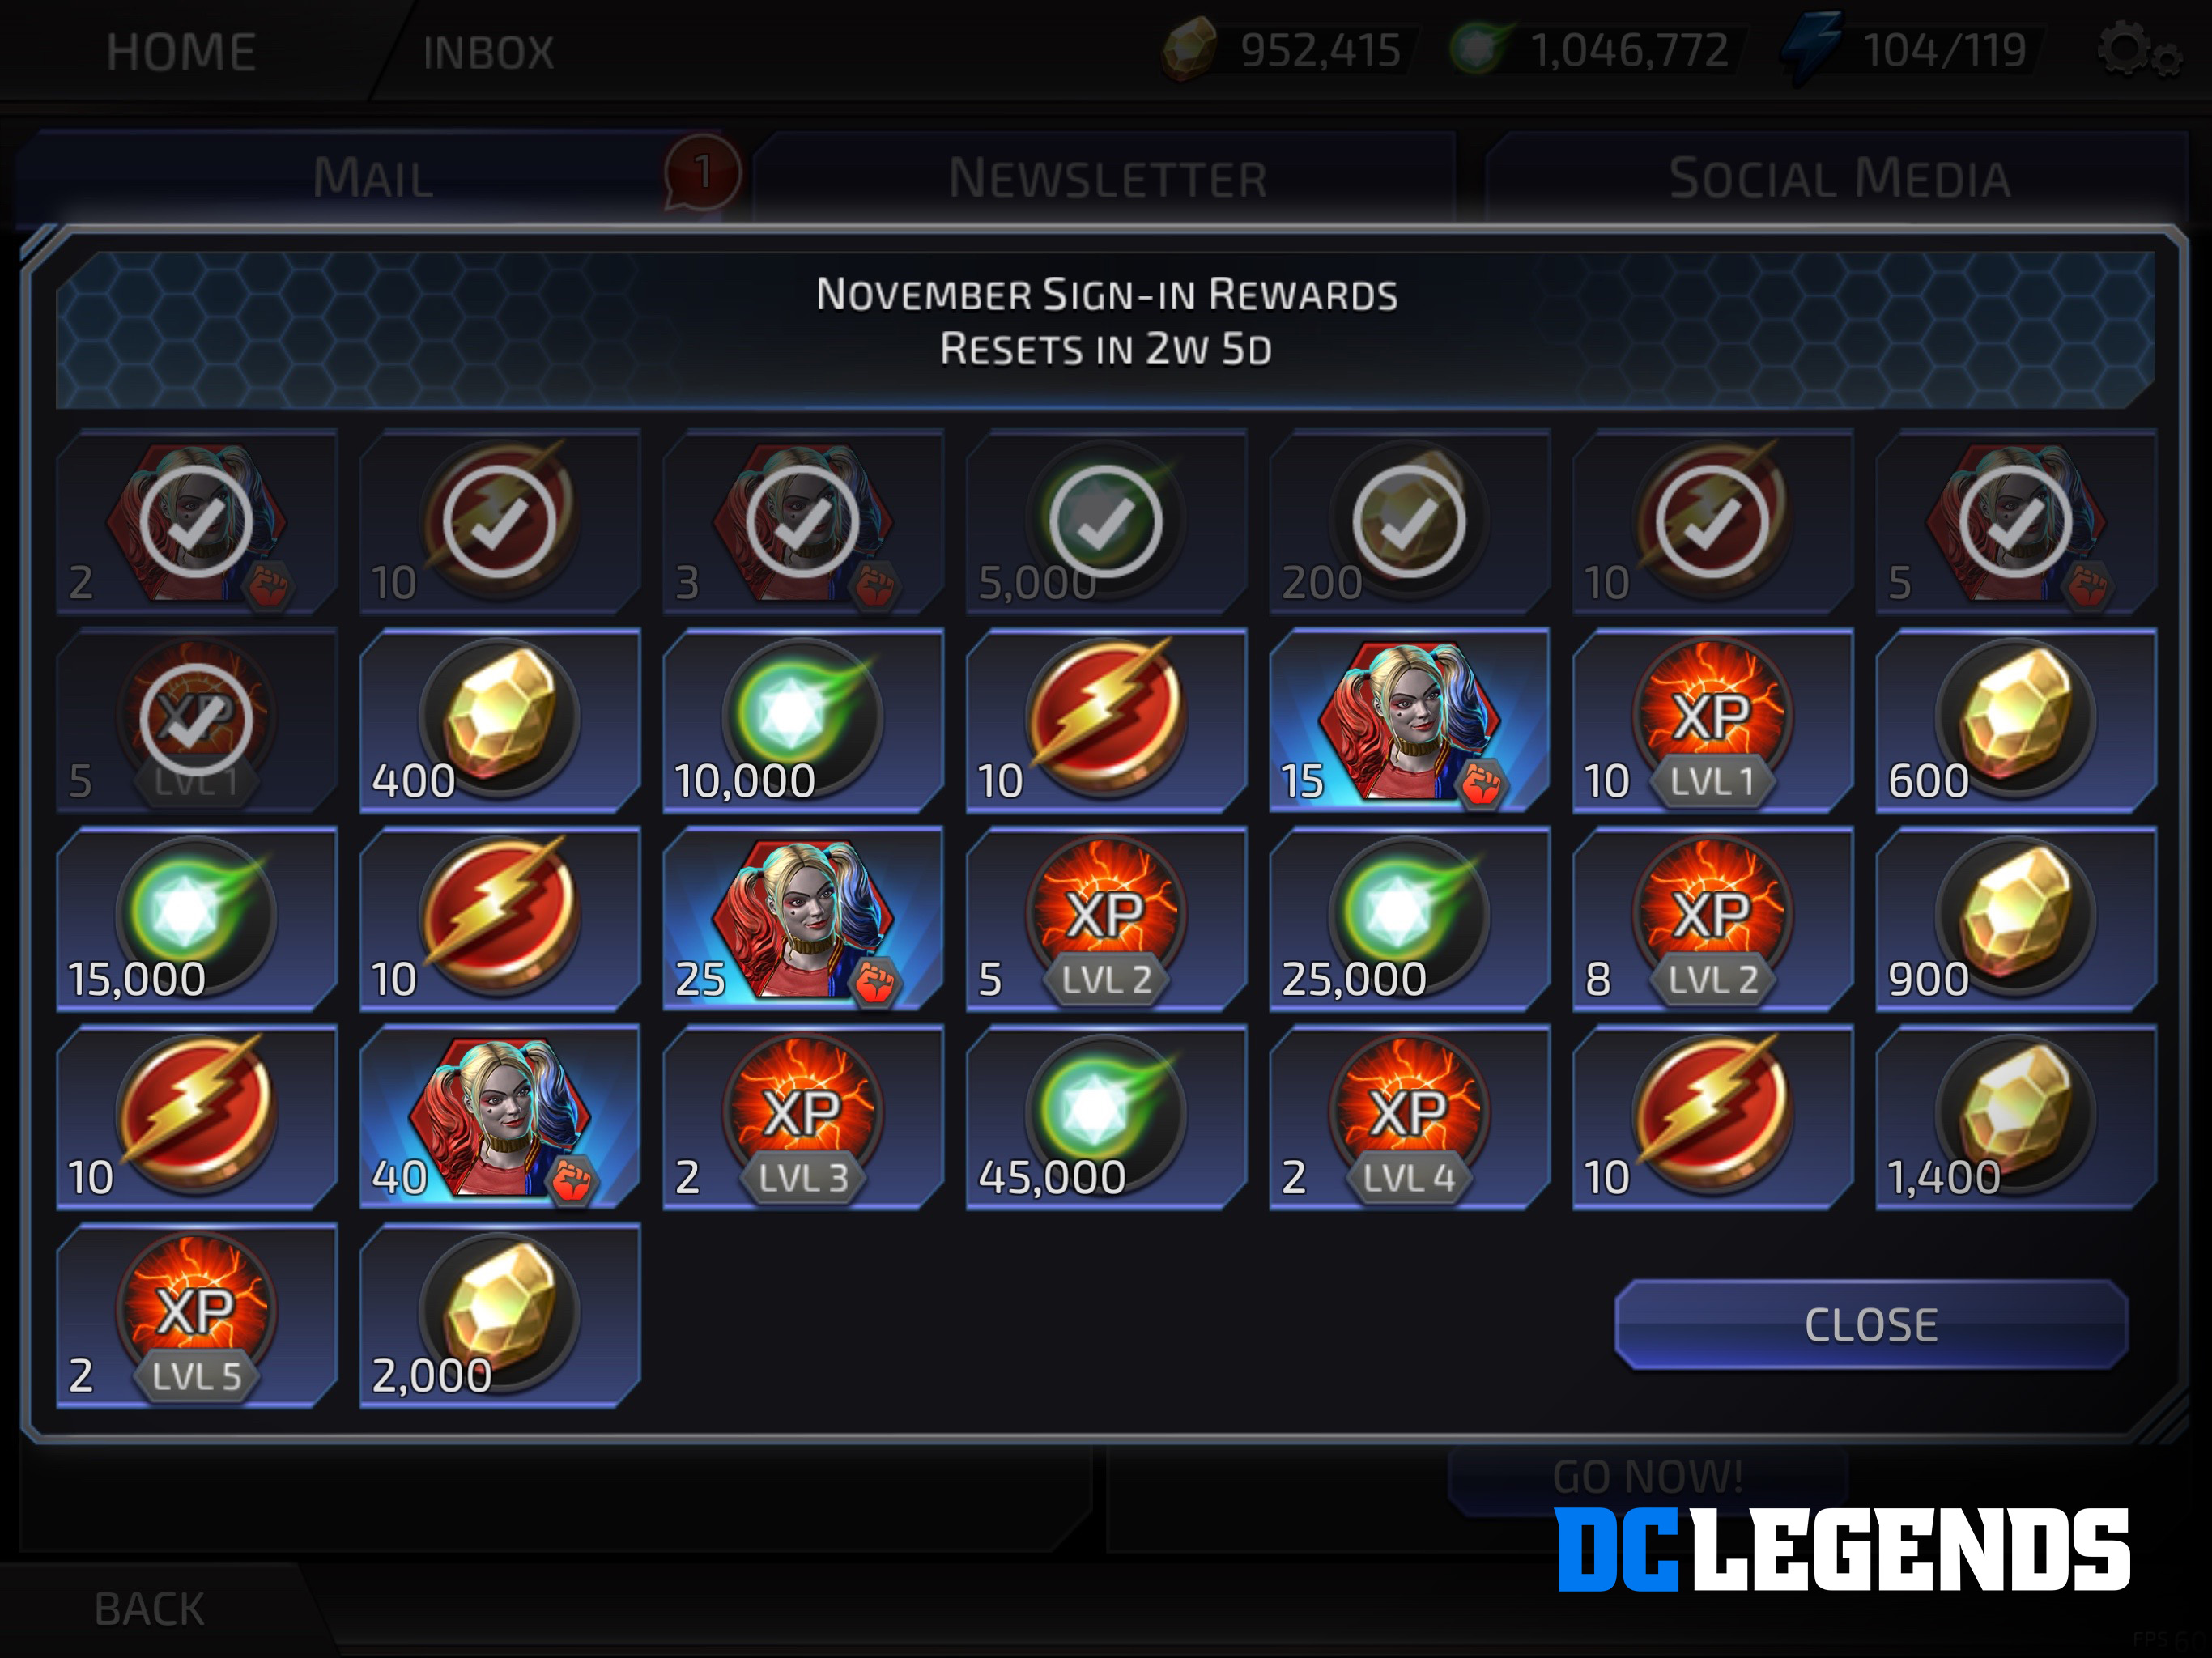 DC Legends: Tips and Tricks